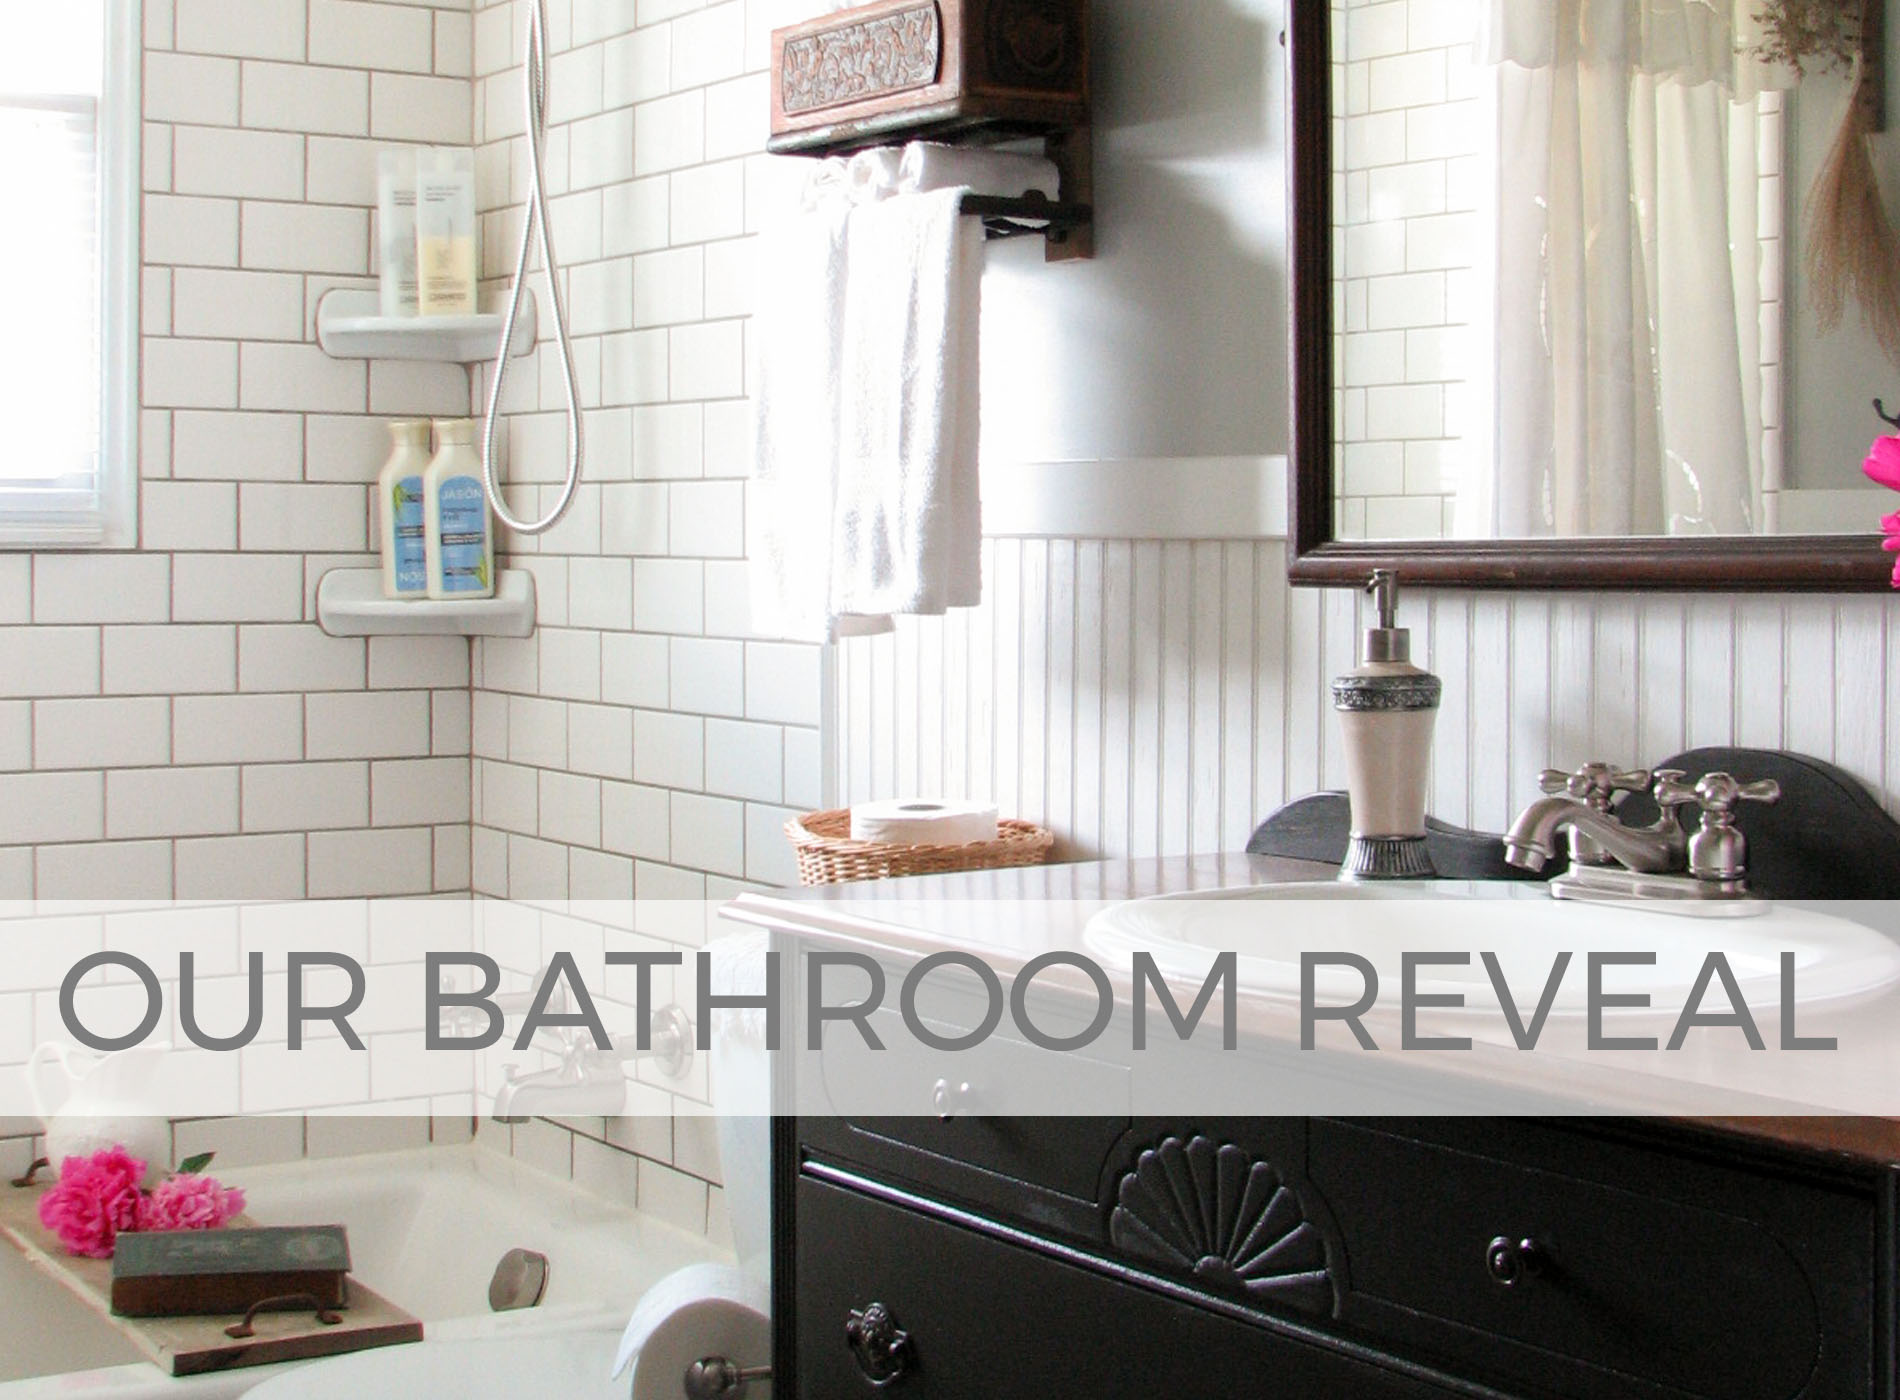 DIY Farmhouse Bathroom Remodel Reveal by Larissa of Prodigal Pieces | prodigalpieces.com #prodigalpieces